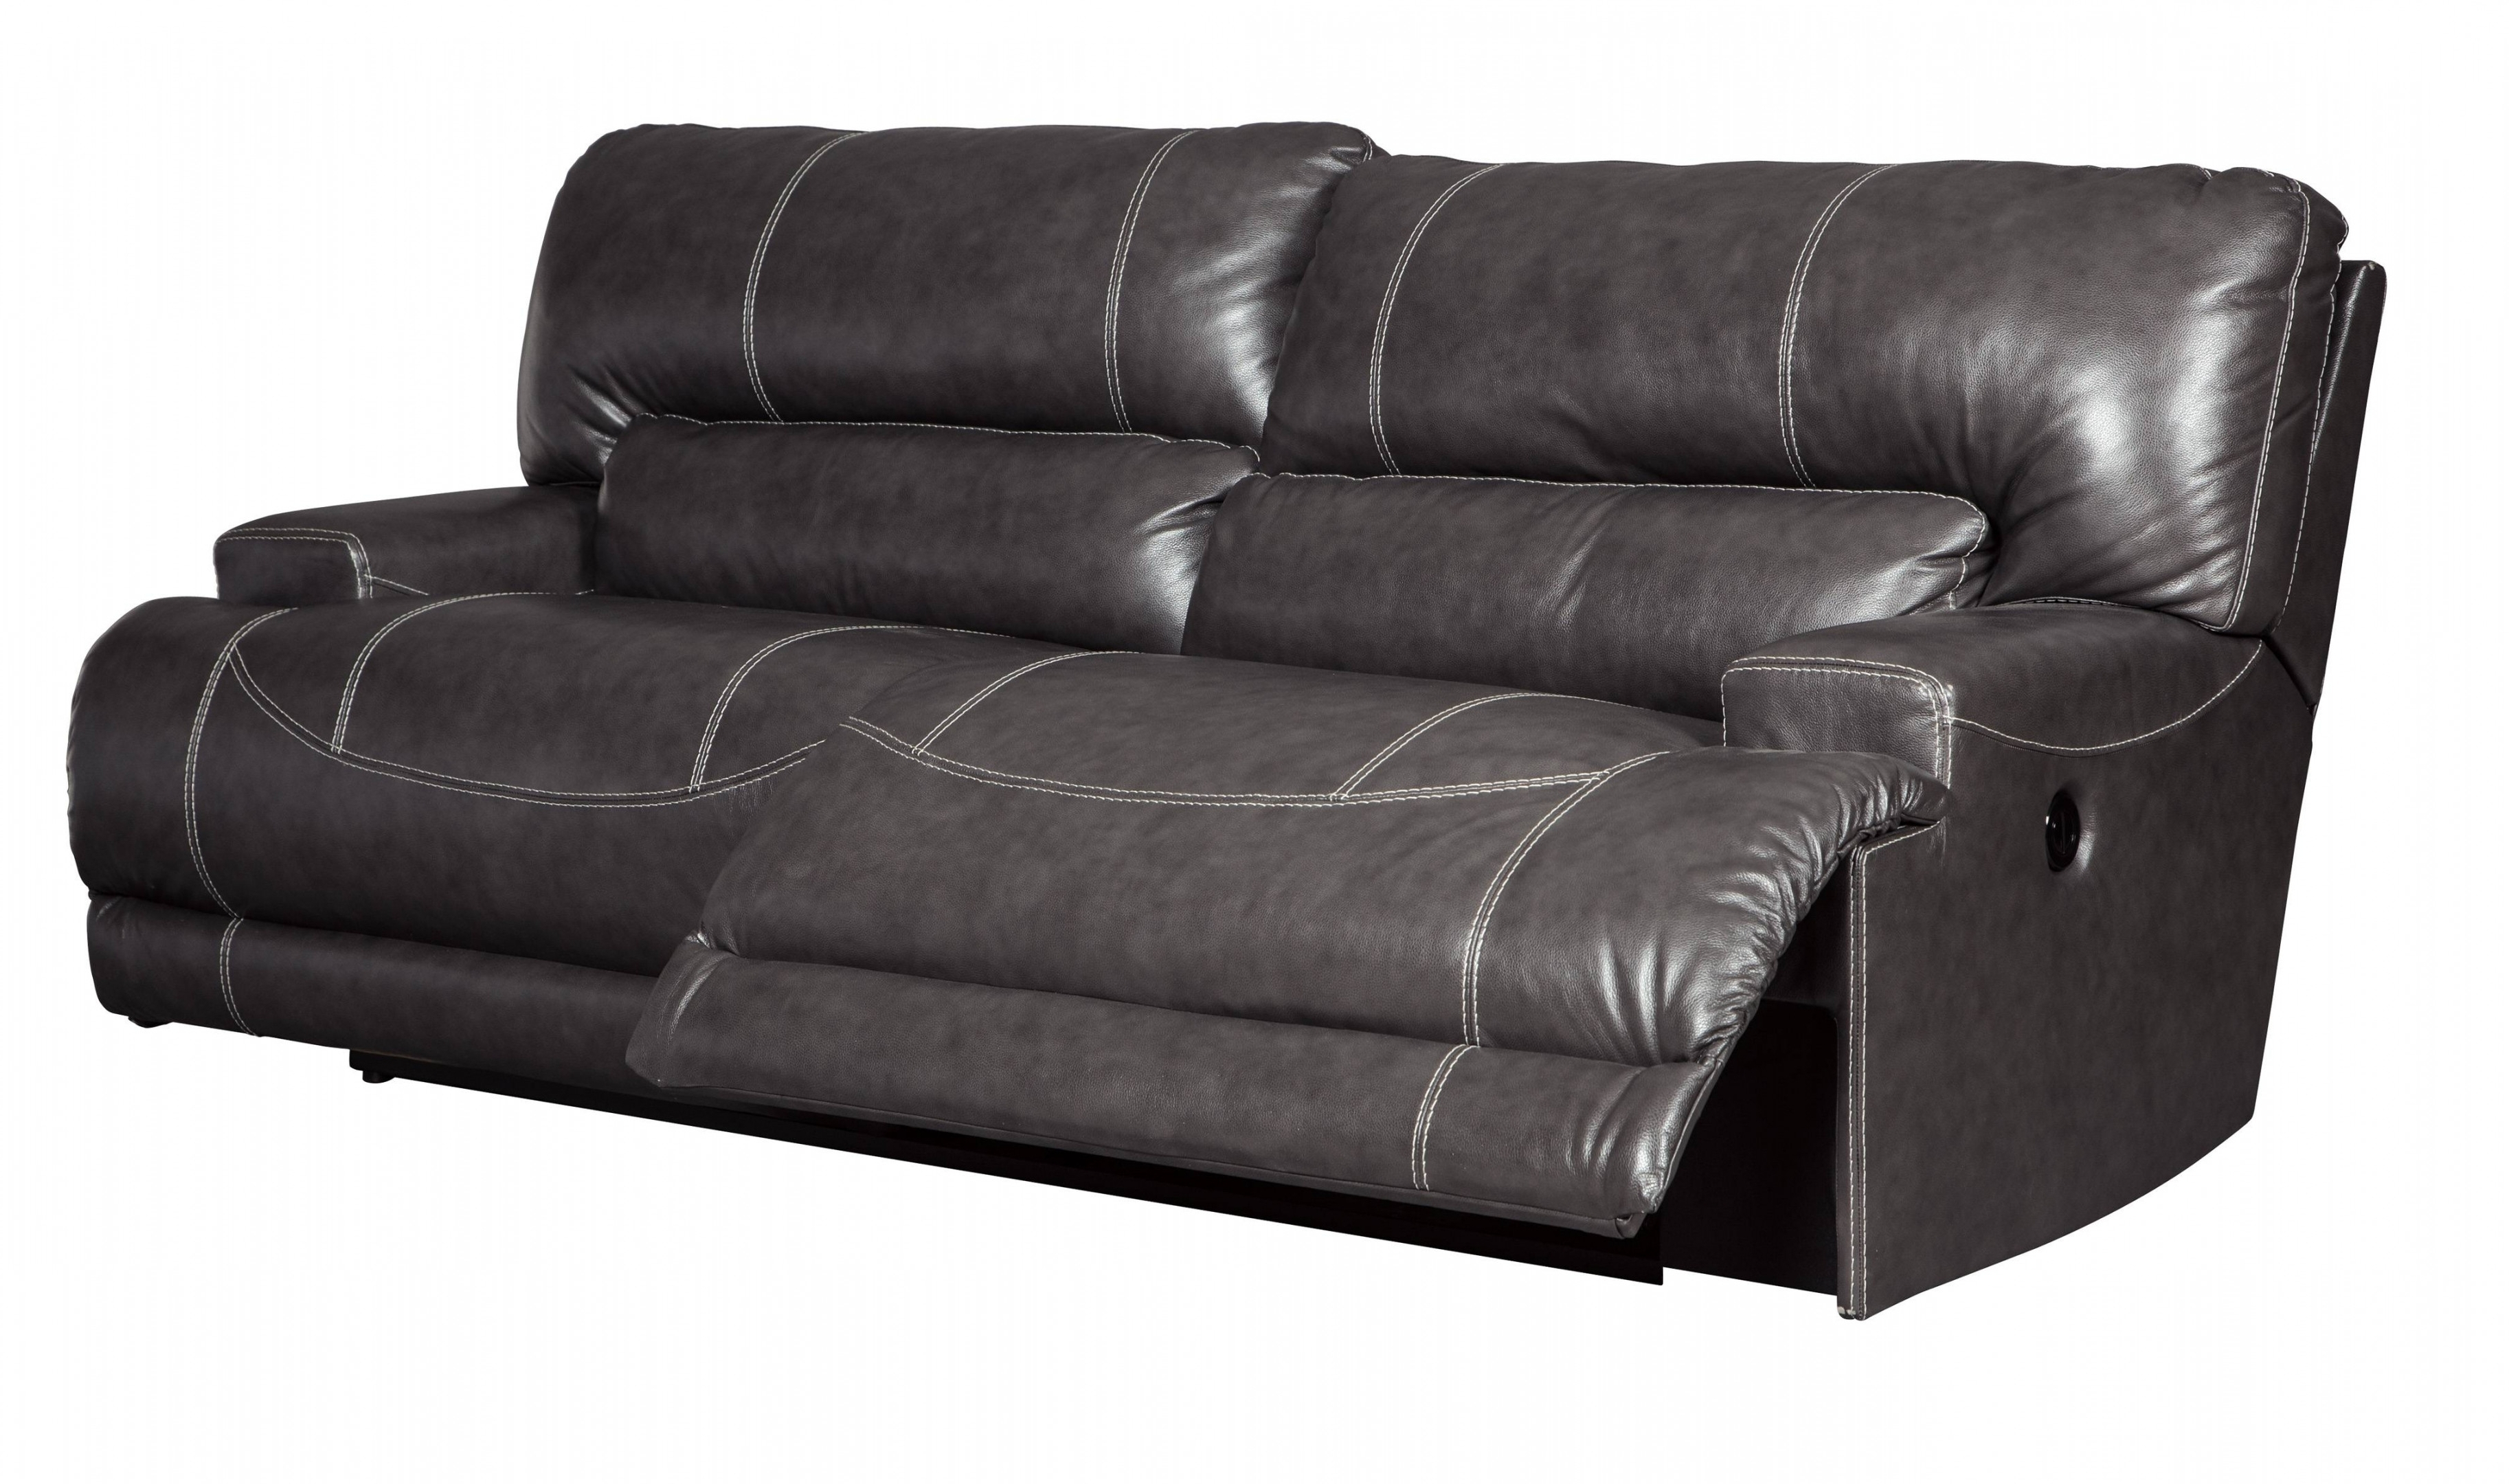 Home Design And With Regard To 2 Seater Recliner Leather Sofas (View 13 of 20)